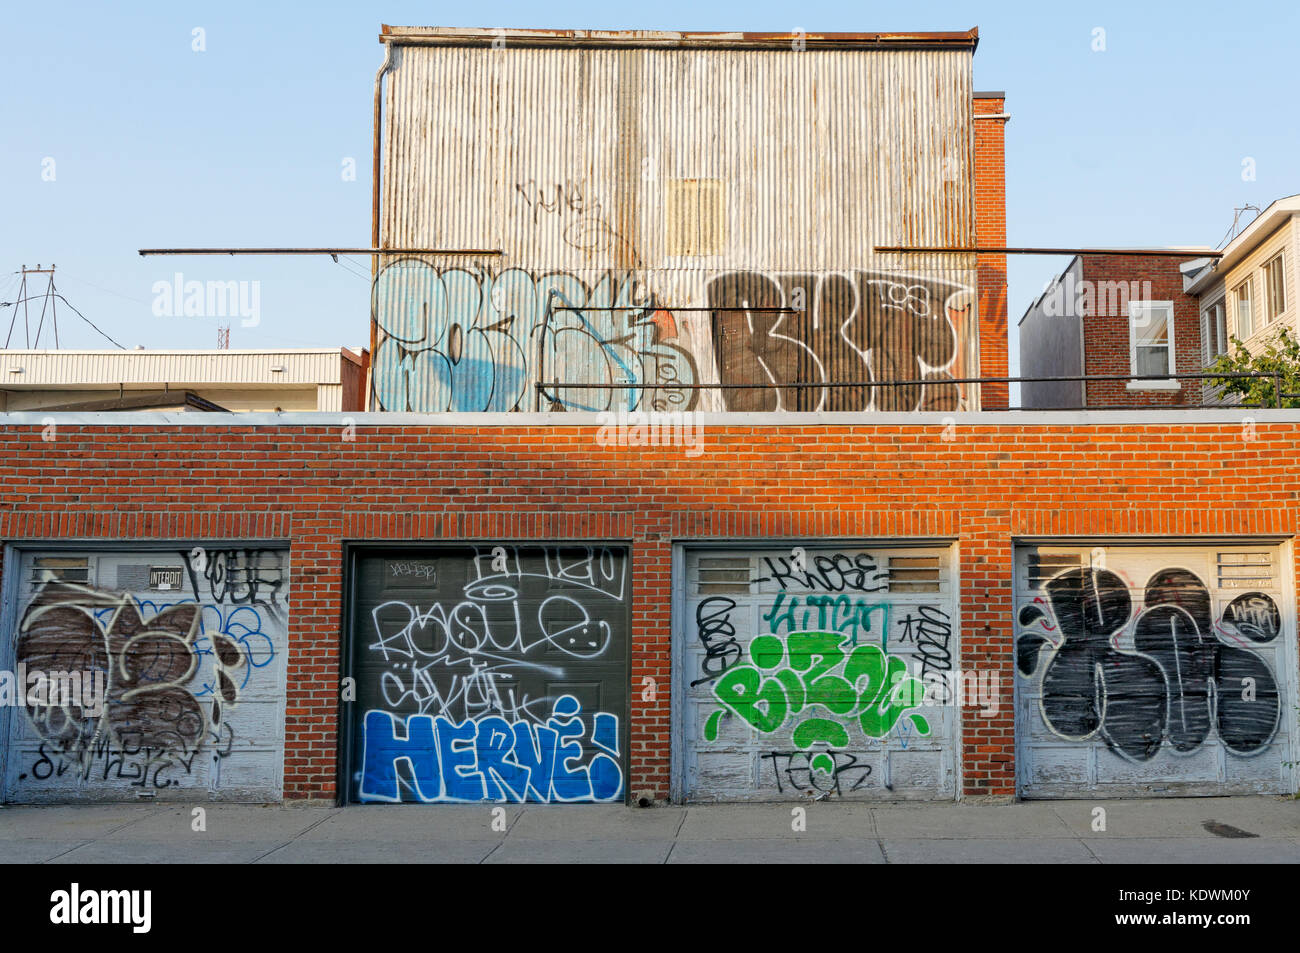 Garage doors stock photos garage doors stock images alamy garage doors and a defaced building covered in urban graffiti and tags montreal quebec rubansaba